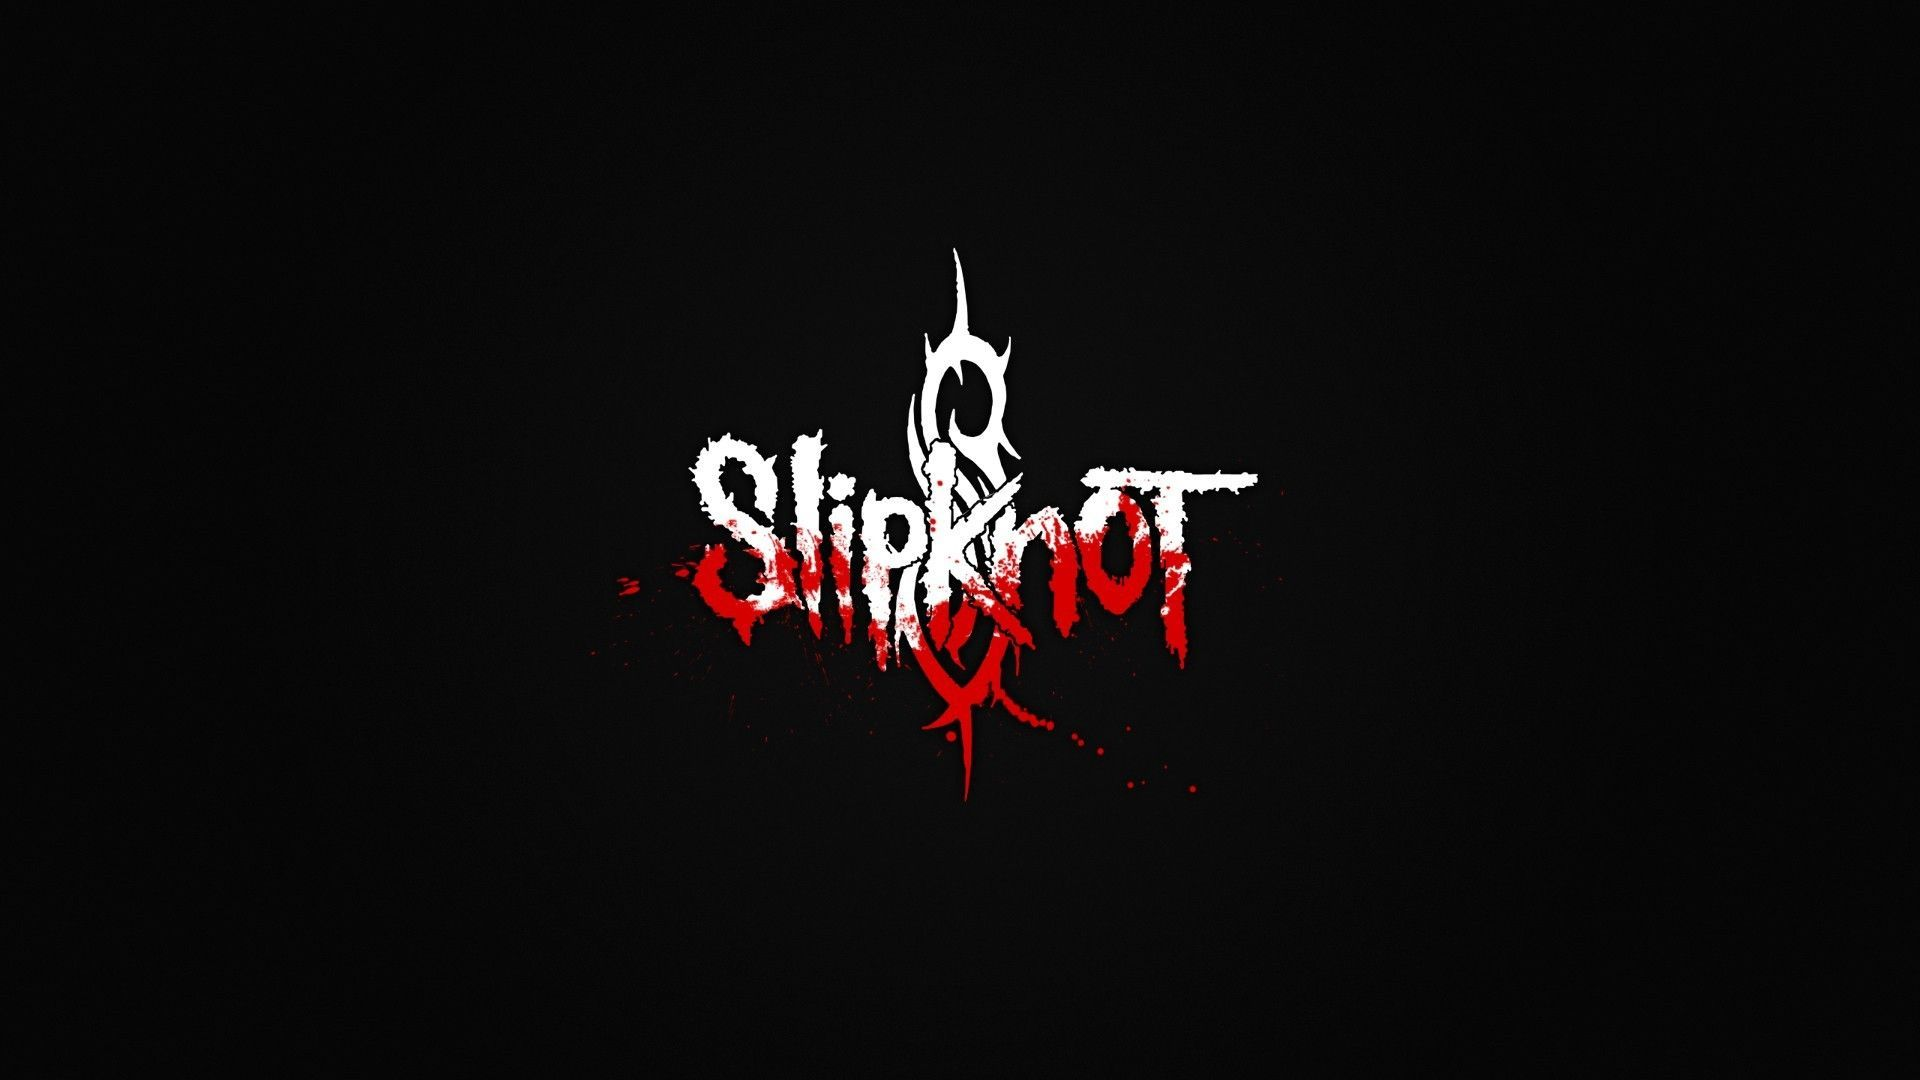 Joey jordison style favor photos pictures and wallpapers for - Slipknot Logo Wallpapers Wallpaper Cave